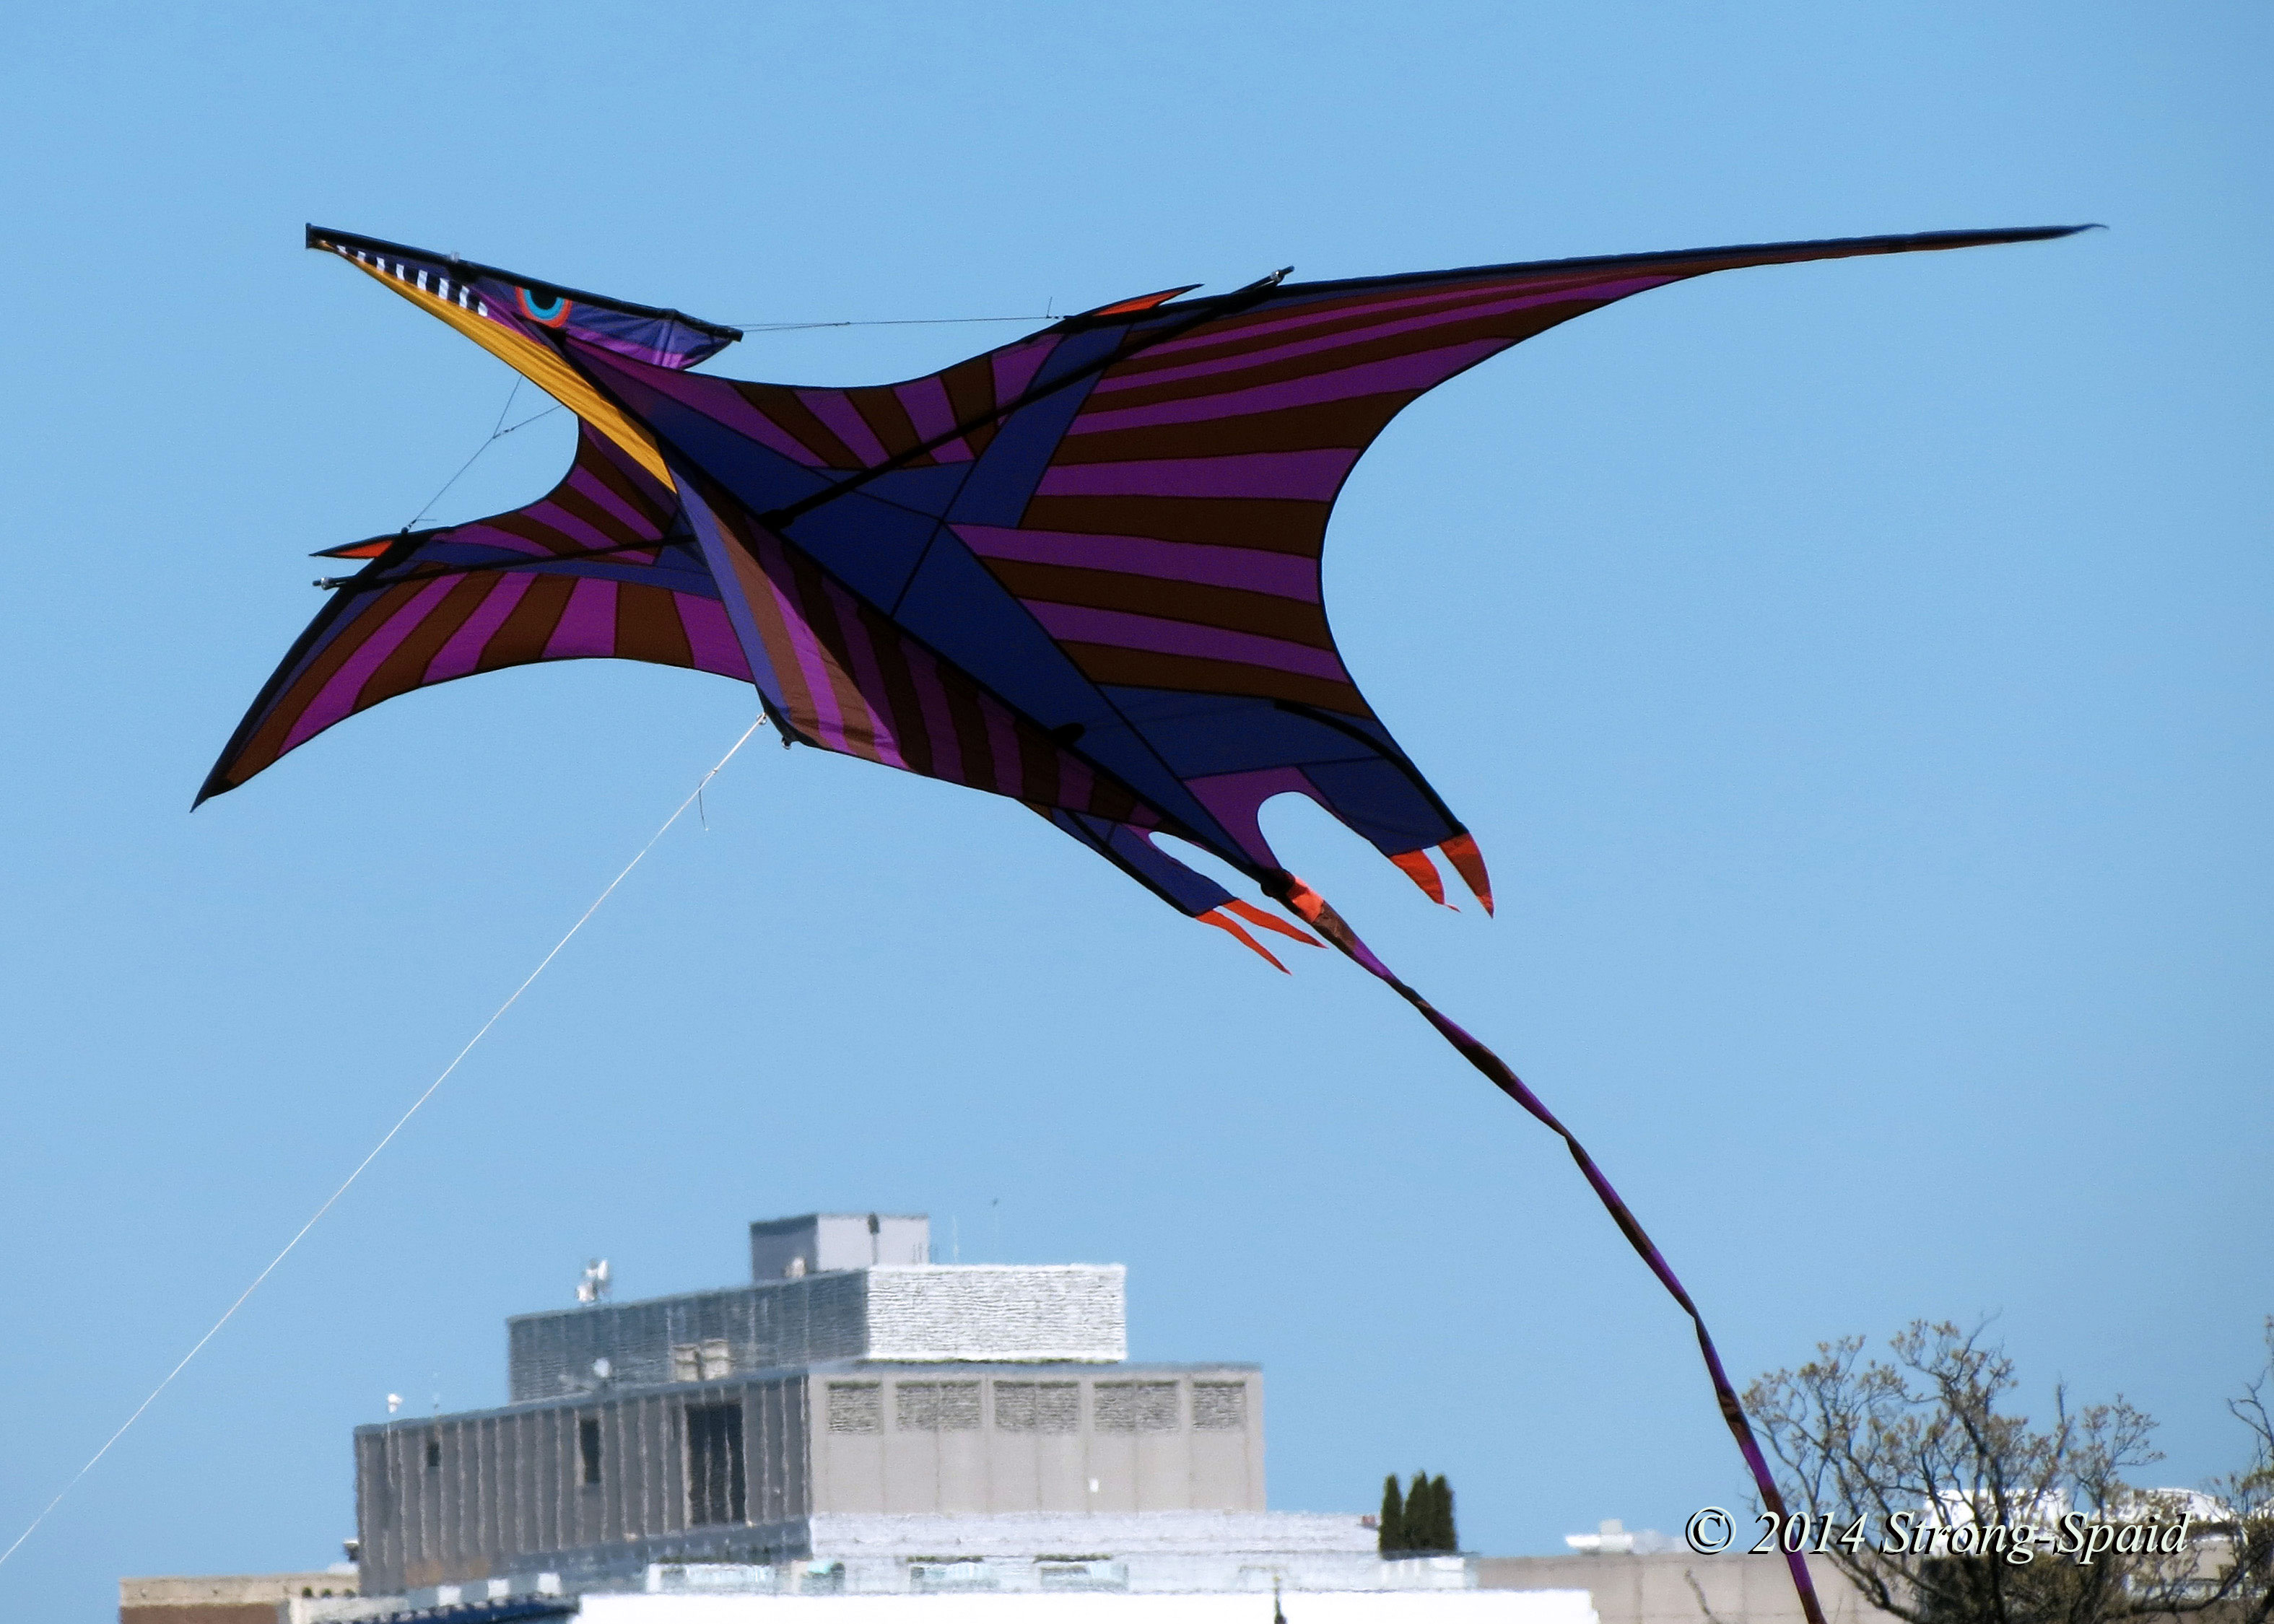 plight of the kites before i forget pterodactyl kite